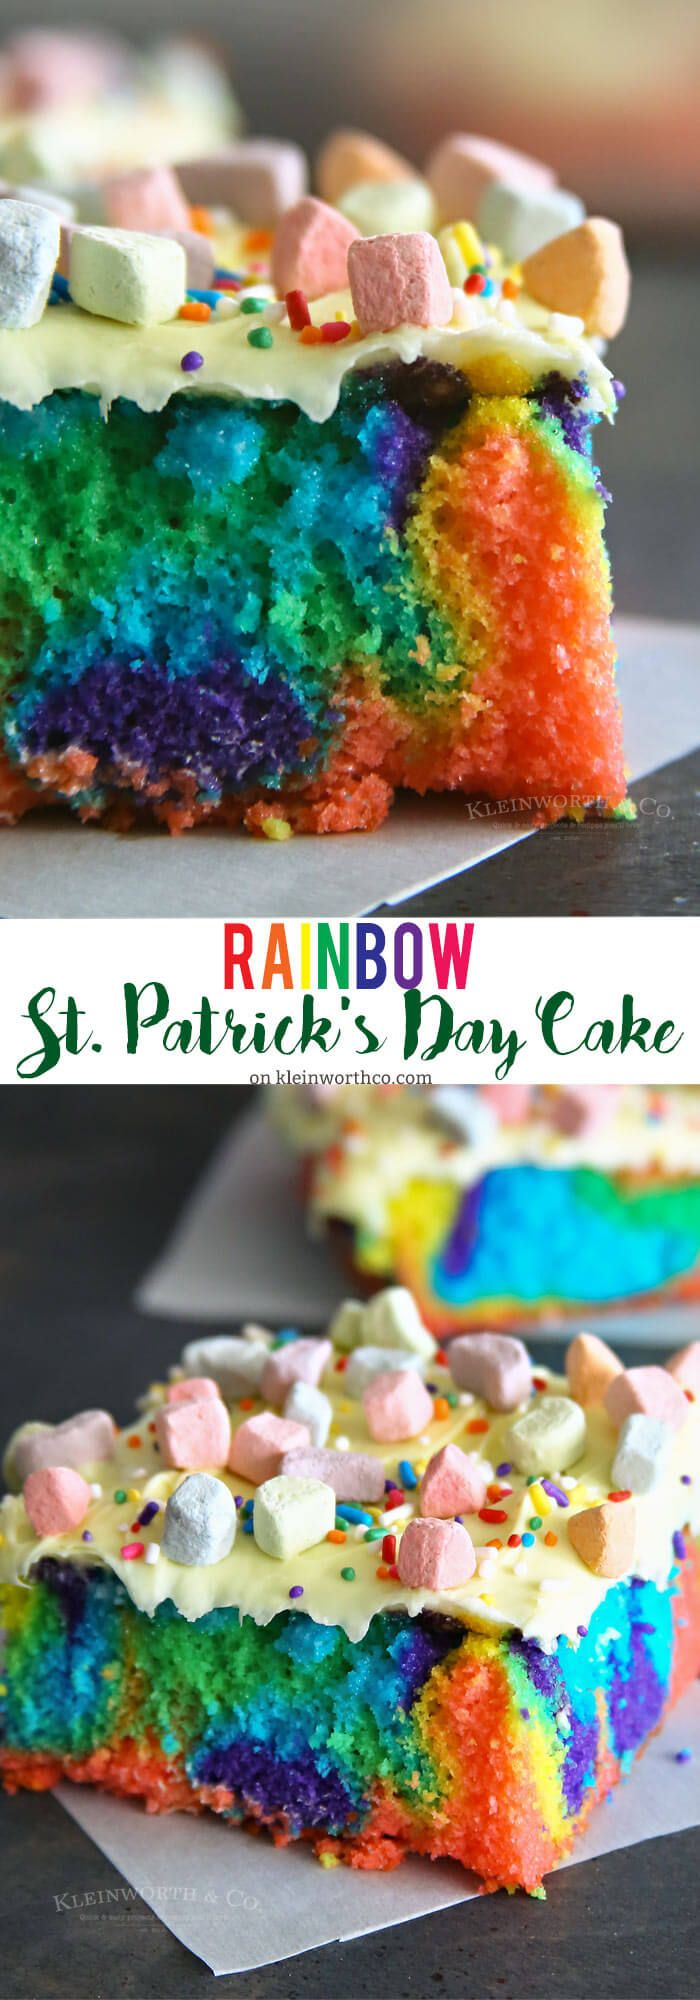 Rainbow St. Patrick's Day Cake is super easy to make & the perfect dessert for your St. Patrick's Day celebrations!  via @KleinworthCo